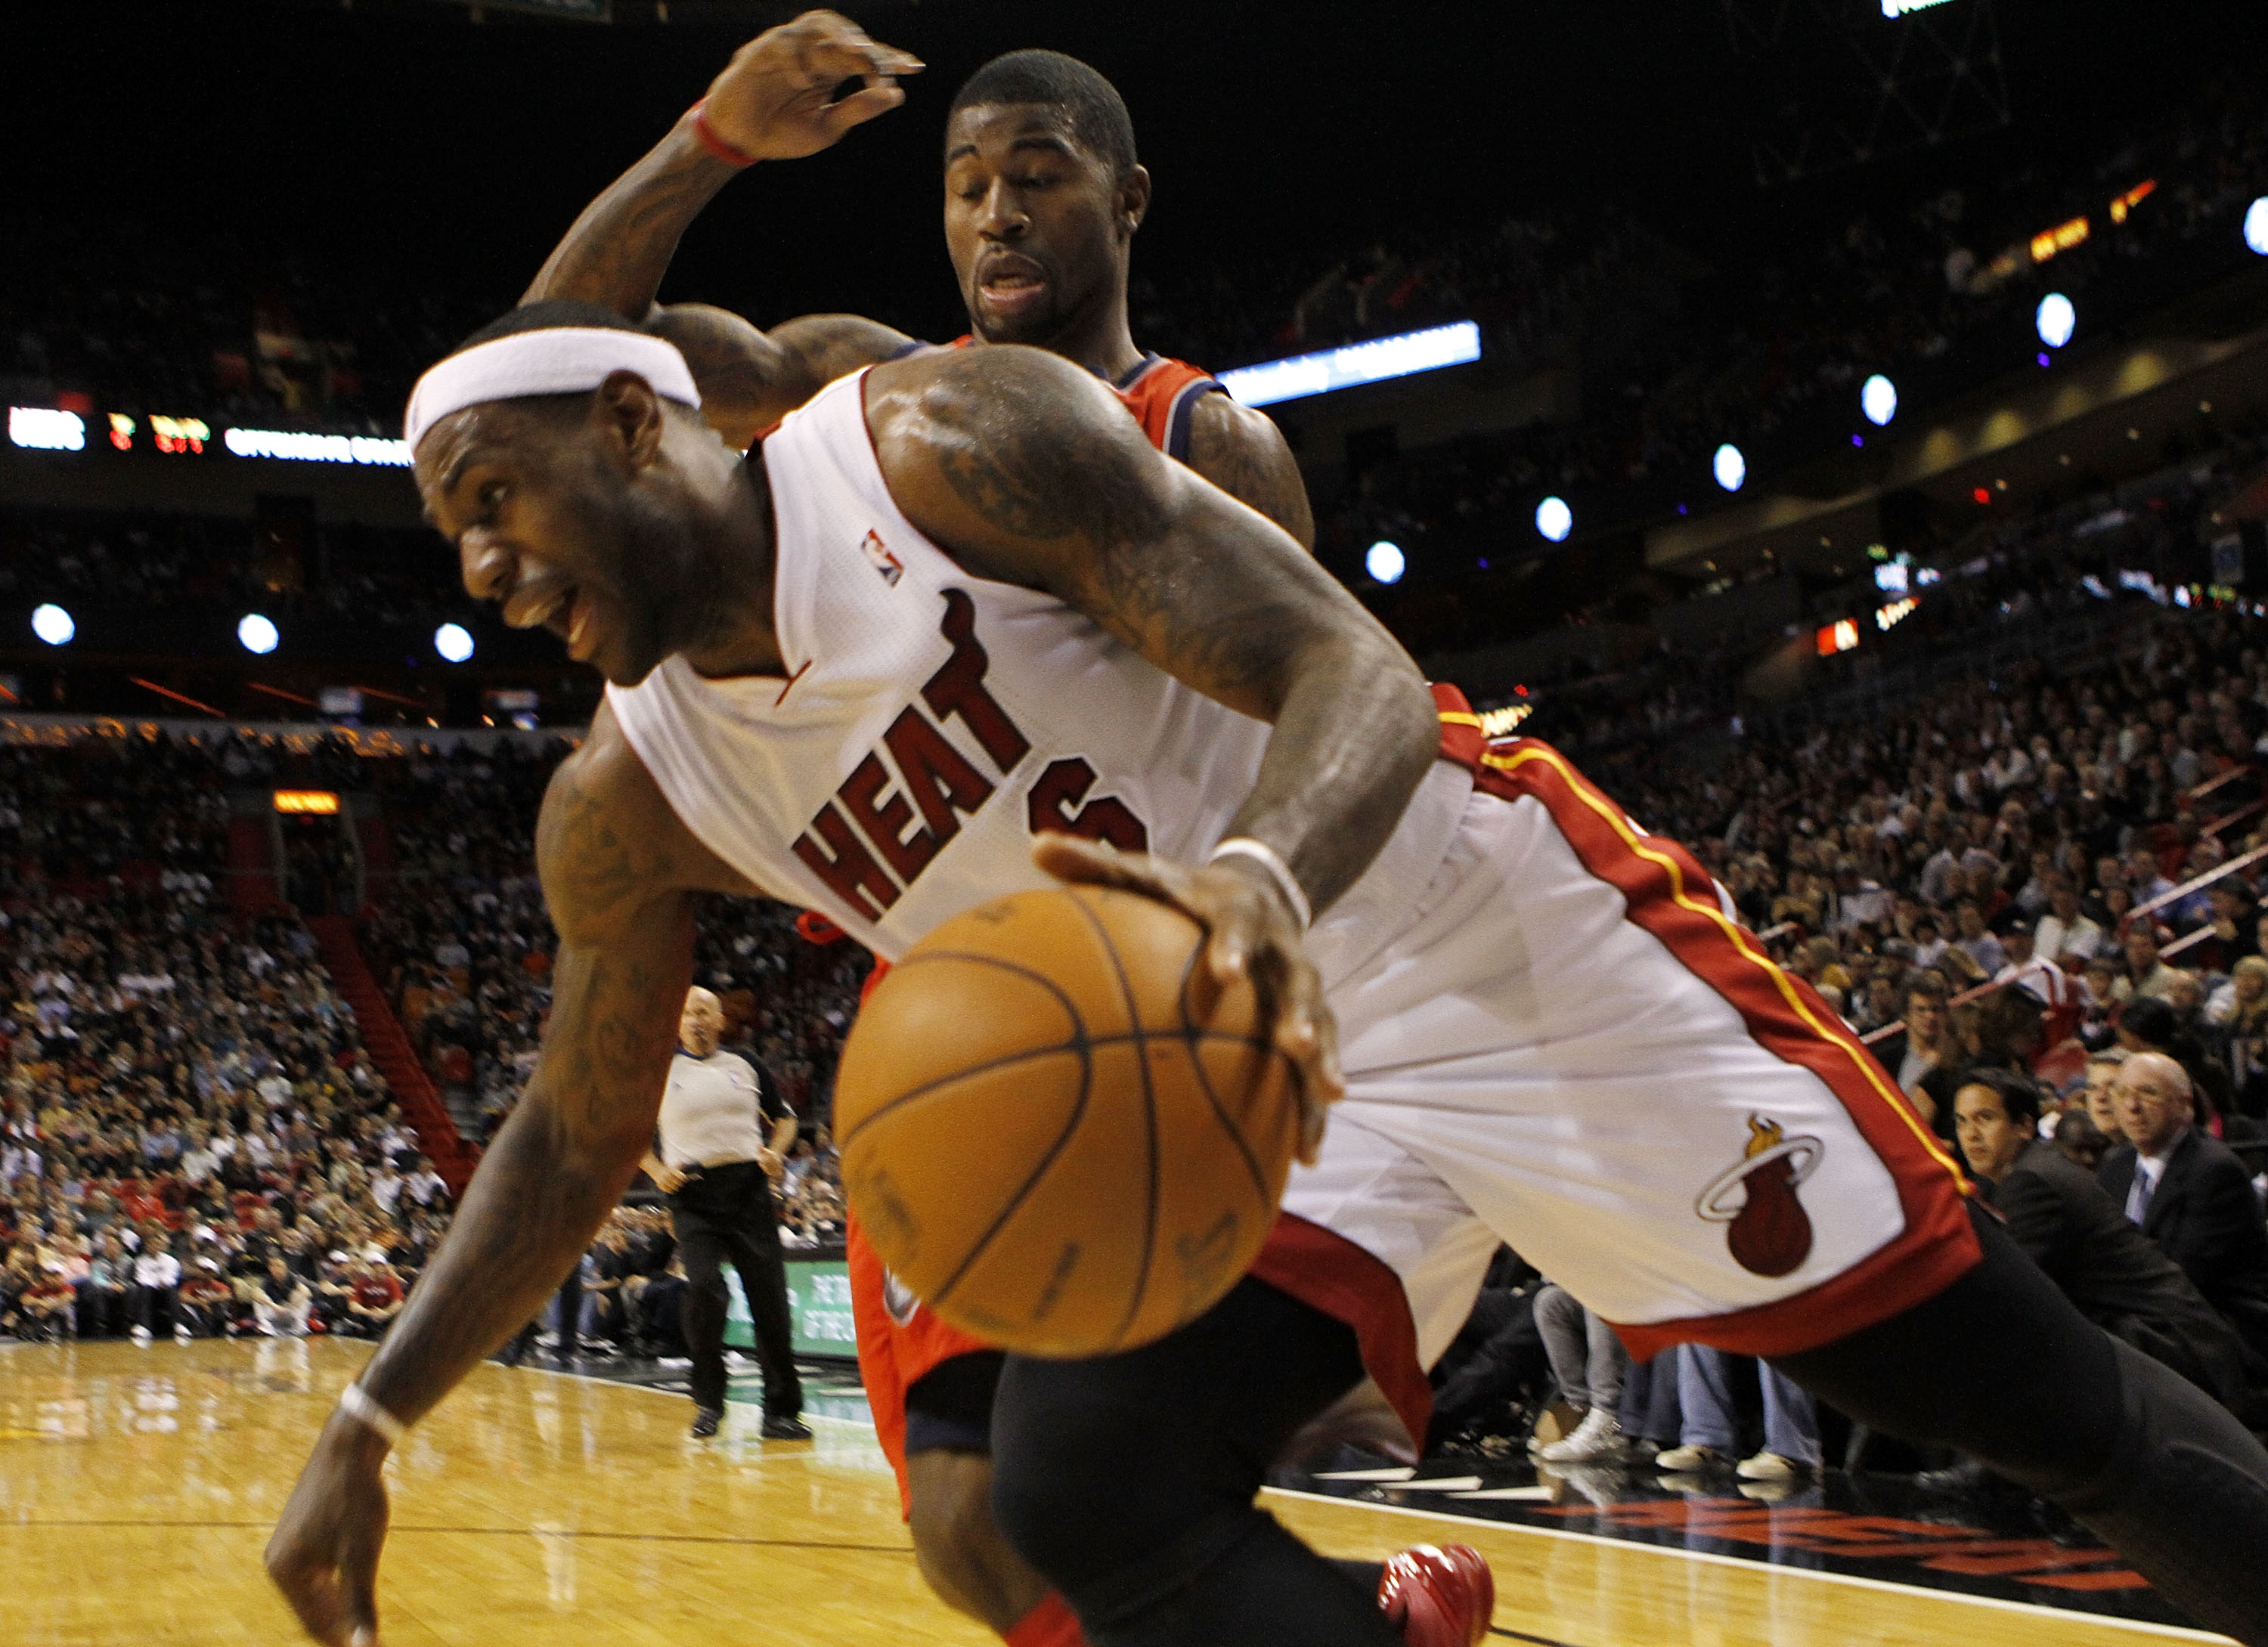 MIAMI - NOVEMBER 06:  Forward LeBron James #6 of the Miami Heat drives against guard Terrence Williams #1 of the New Jersey Nets  at American Airlines Arena on November 6, 2010 in Miami, Florida. NOTE TO USER: User expressly acknowledges and agrees that,